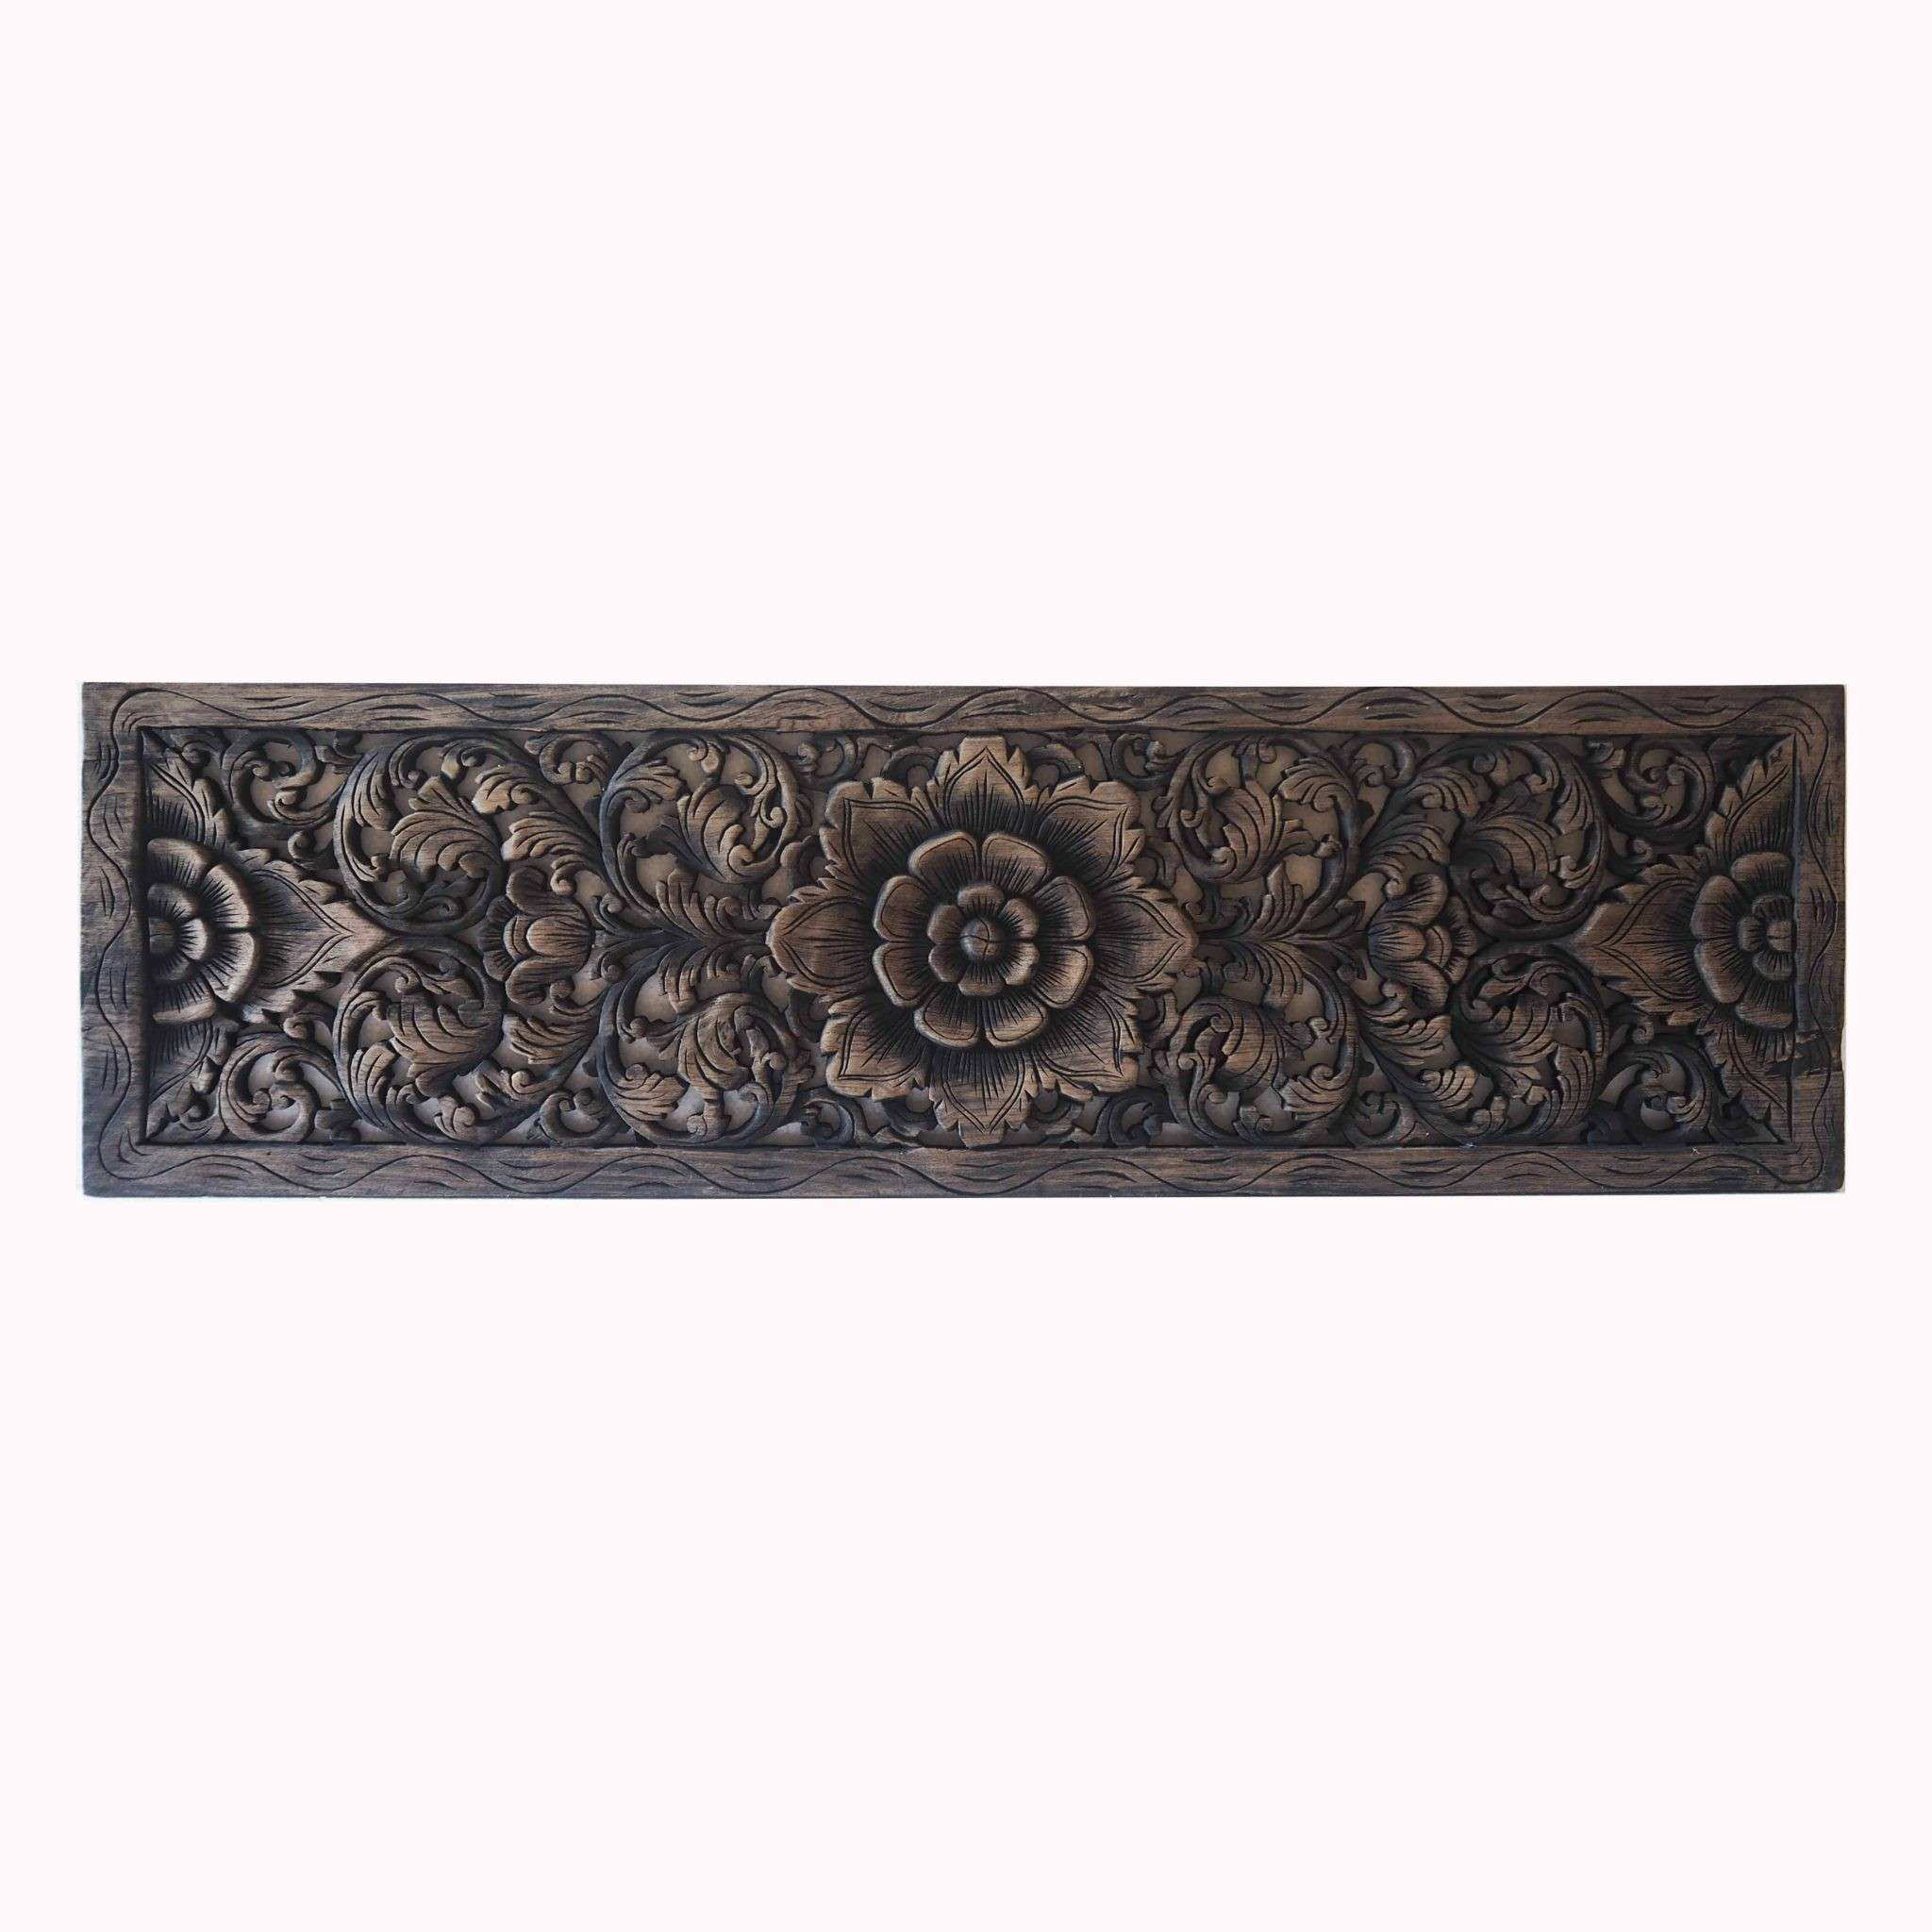 reclaimed stick covering paneling decorative art rustic slat distressed veneer wood with interiors and nature wooden wall peel back tiles to walls panels white timber for decor